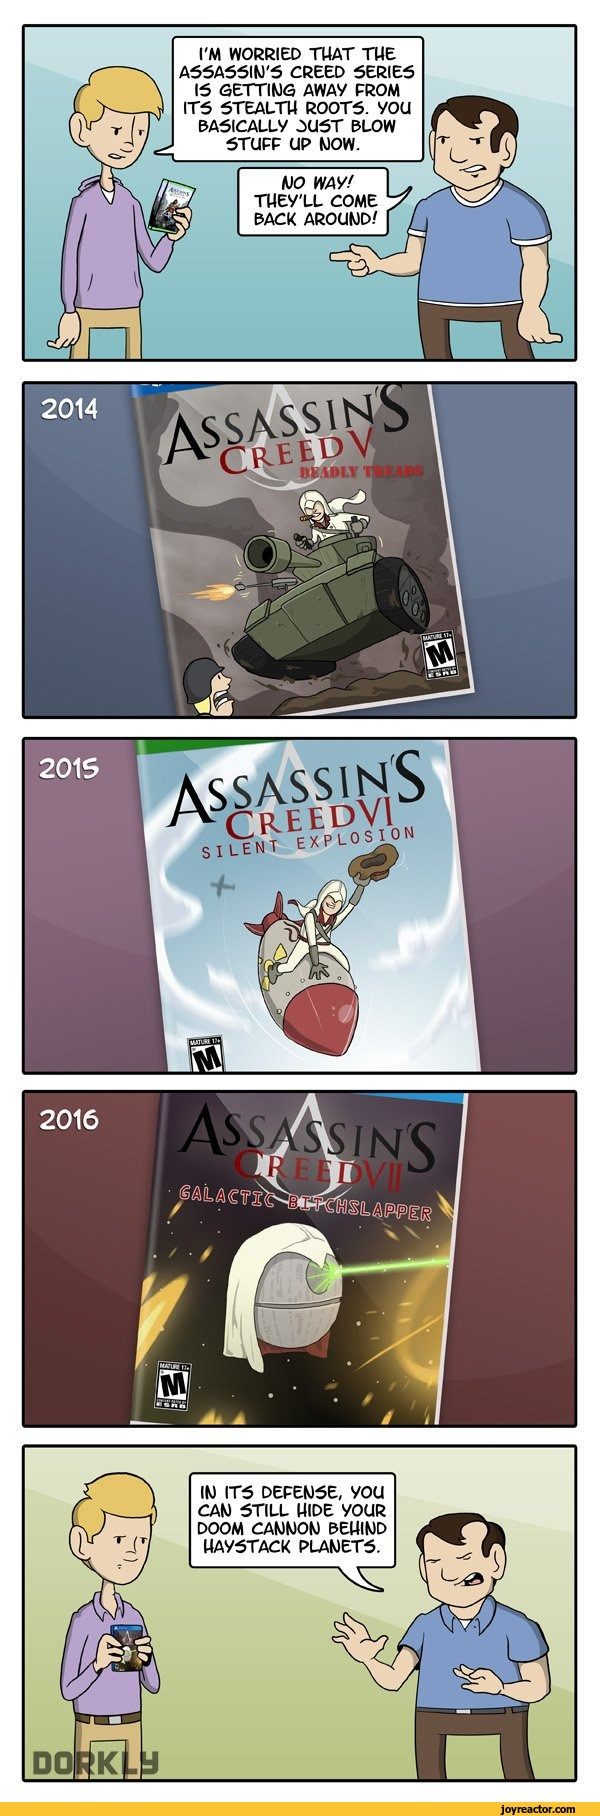 assassin27s-creed-games-dorkly-comics-96.jpeg